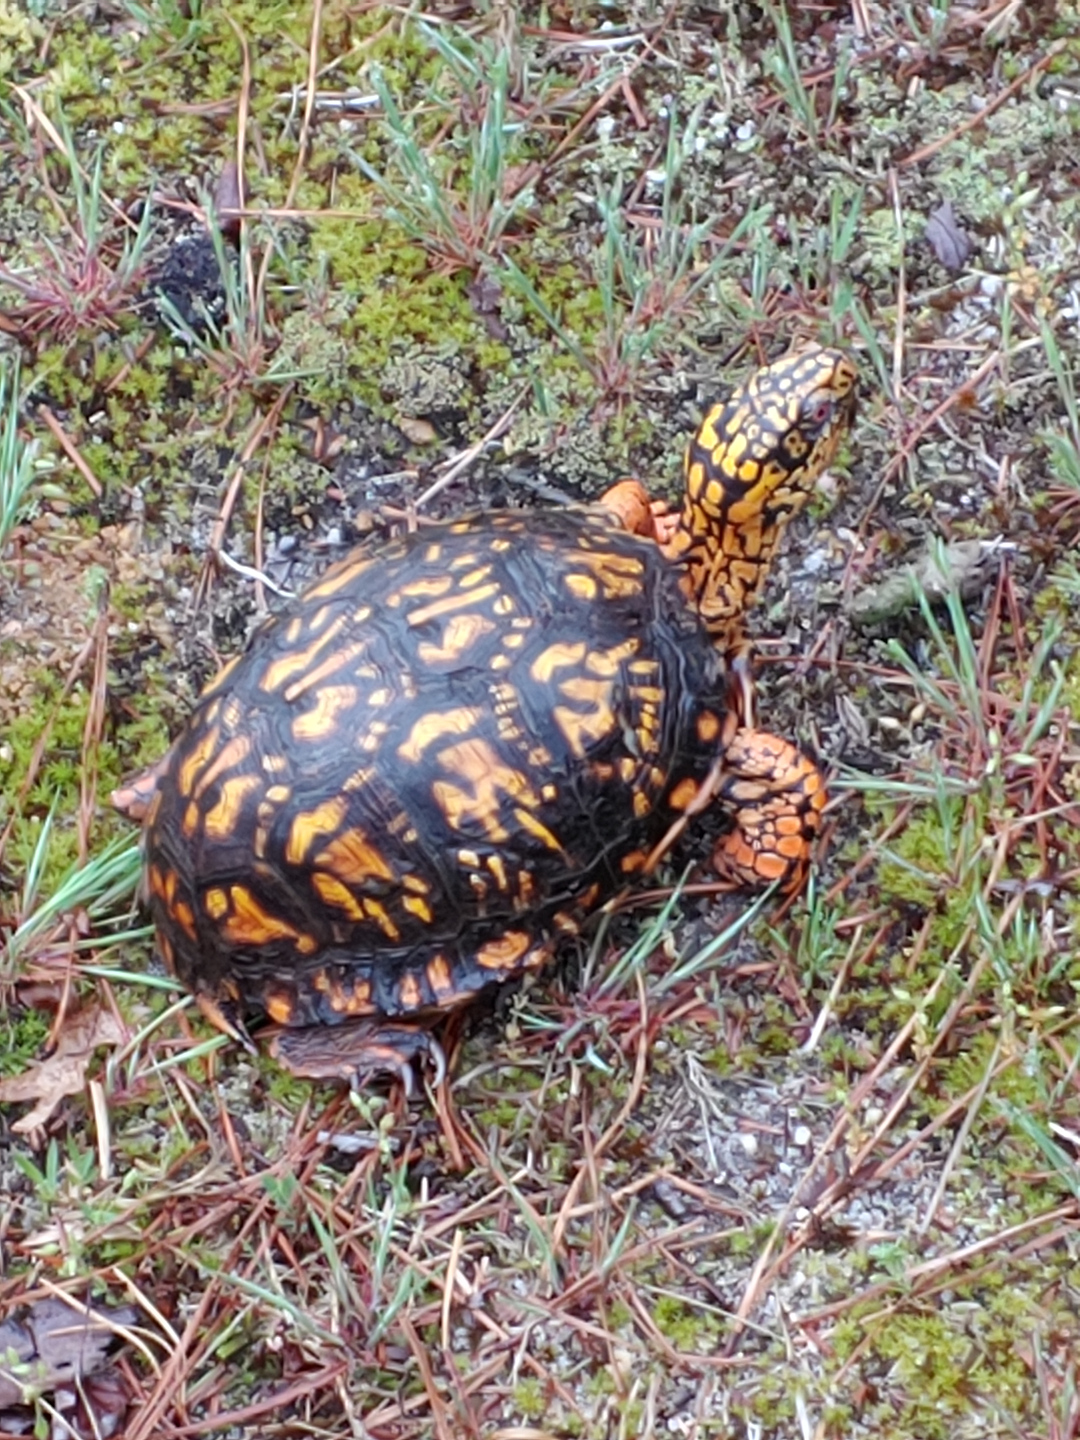 box turtle with bright markings